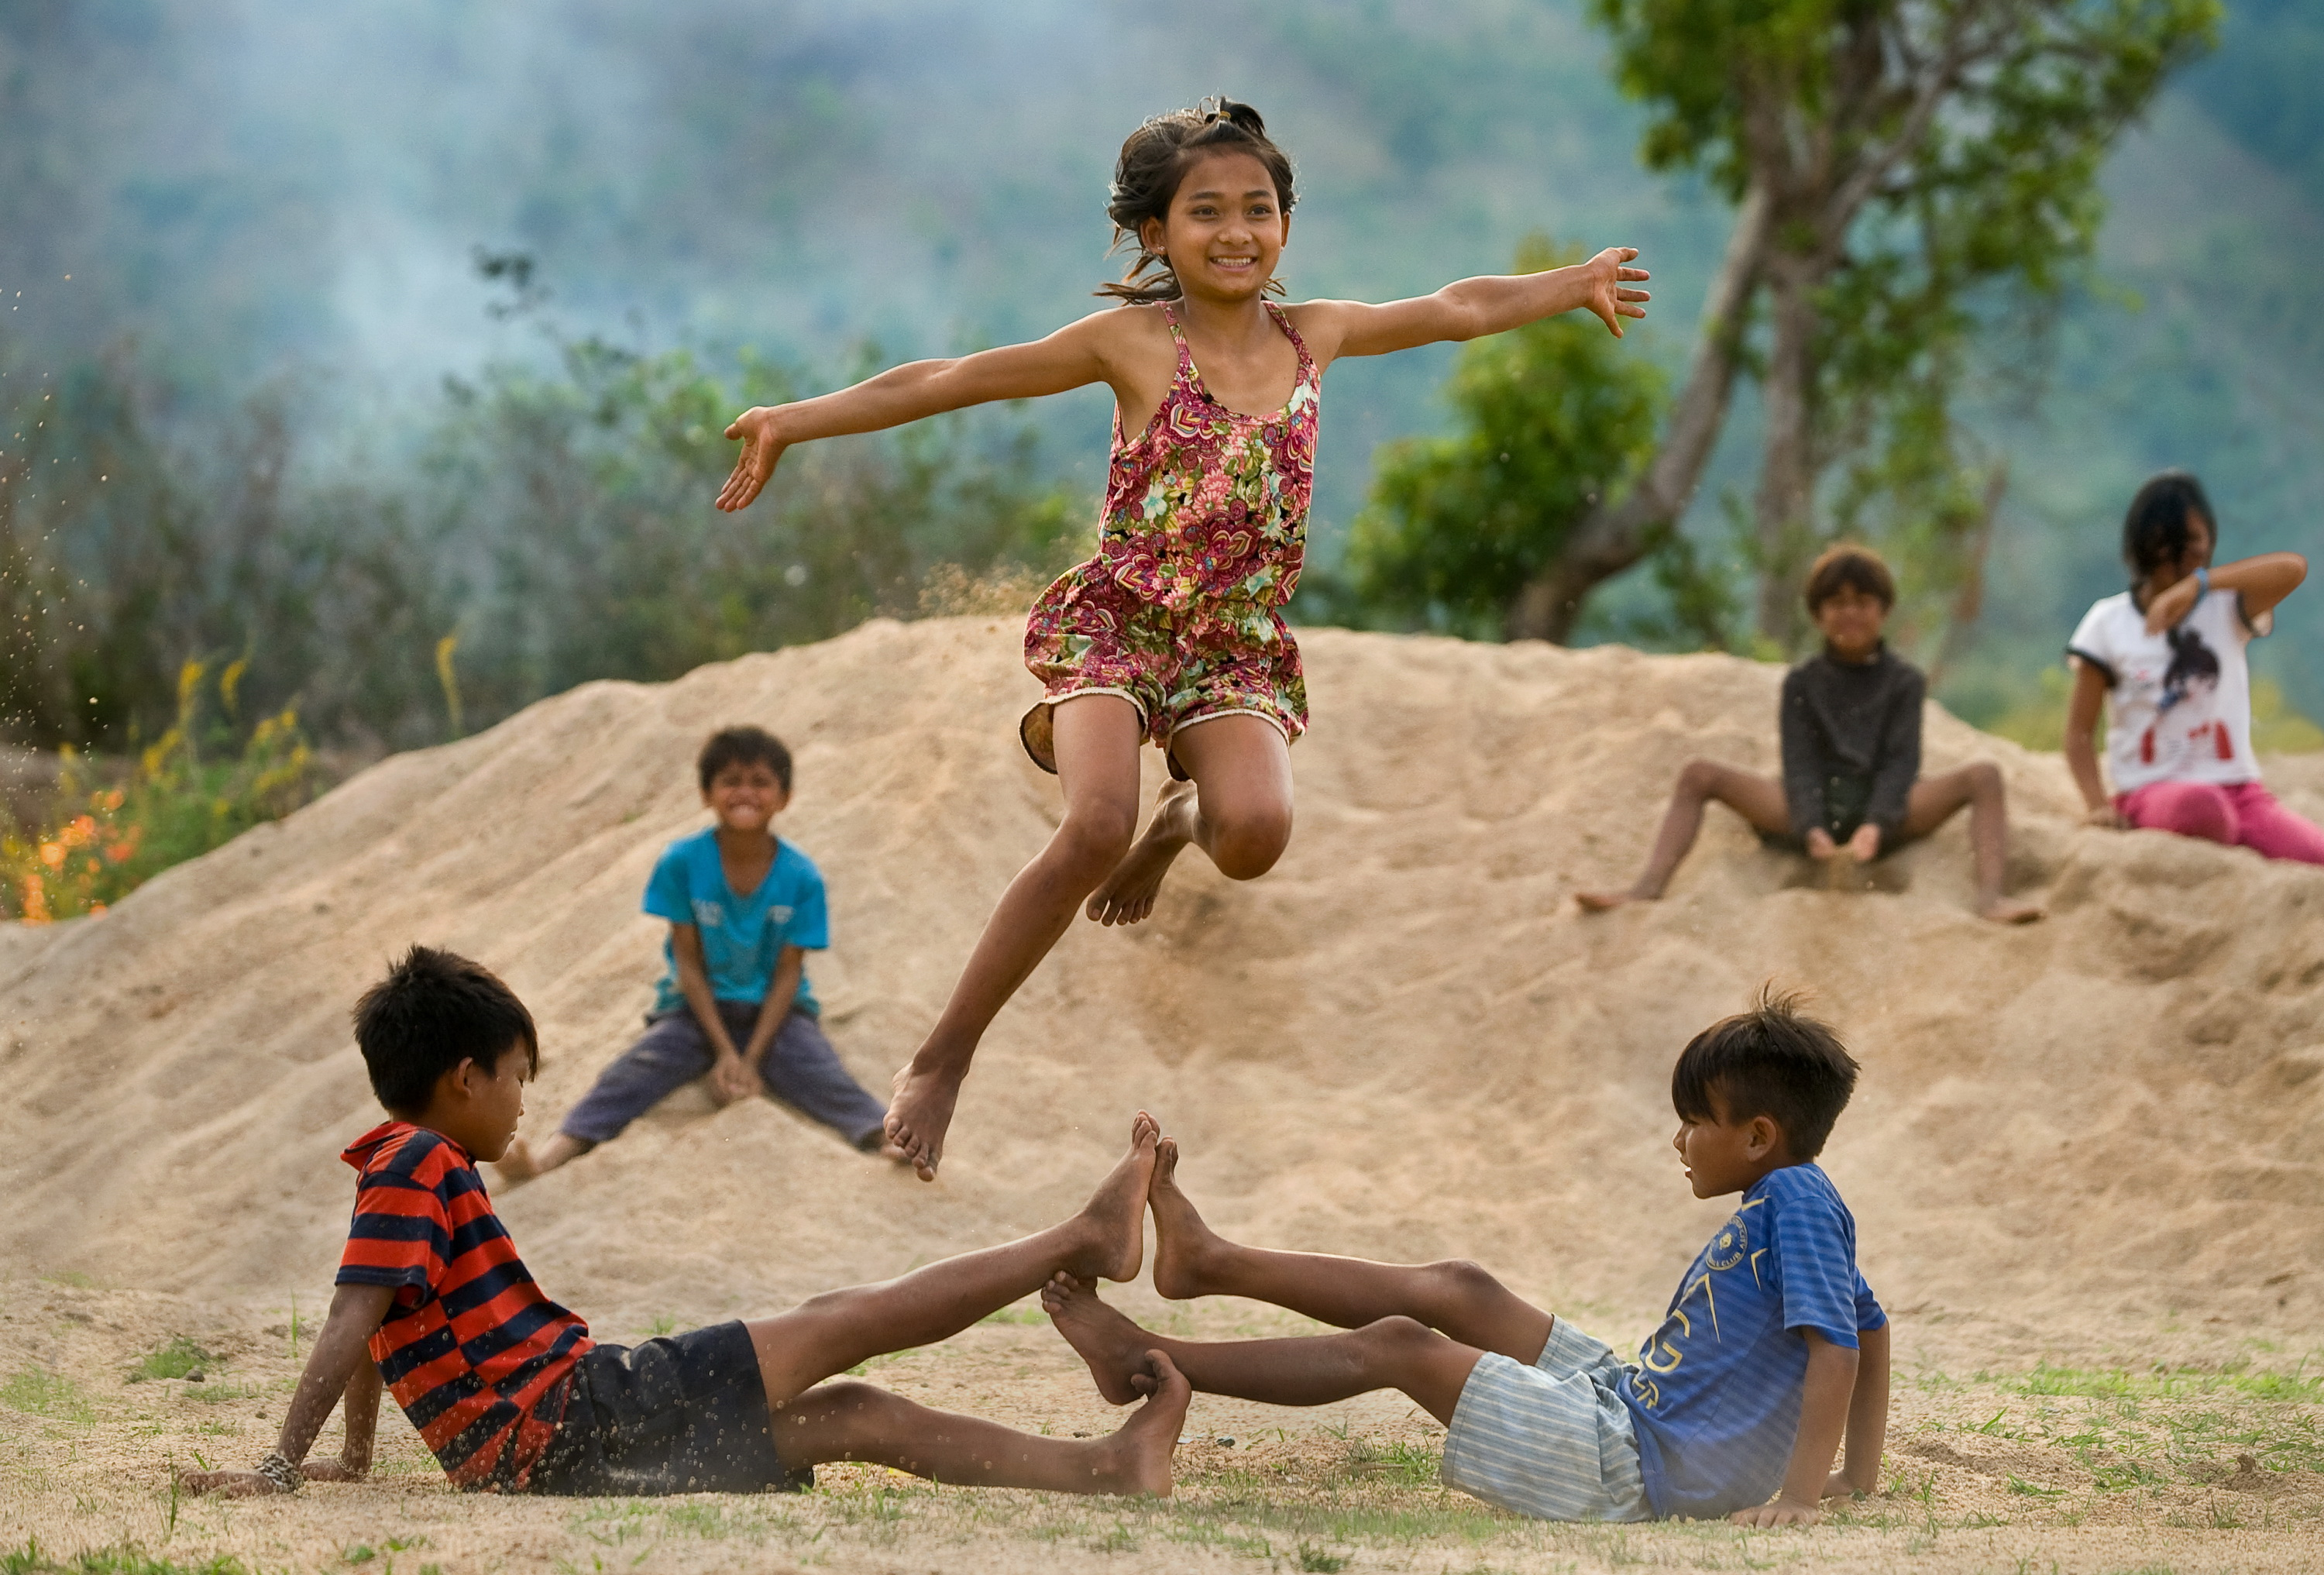 Children play outside. Two boys are on the ground touching their feet, while one girl is frozen in the air happily jumping above them.